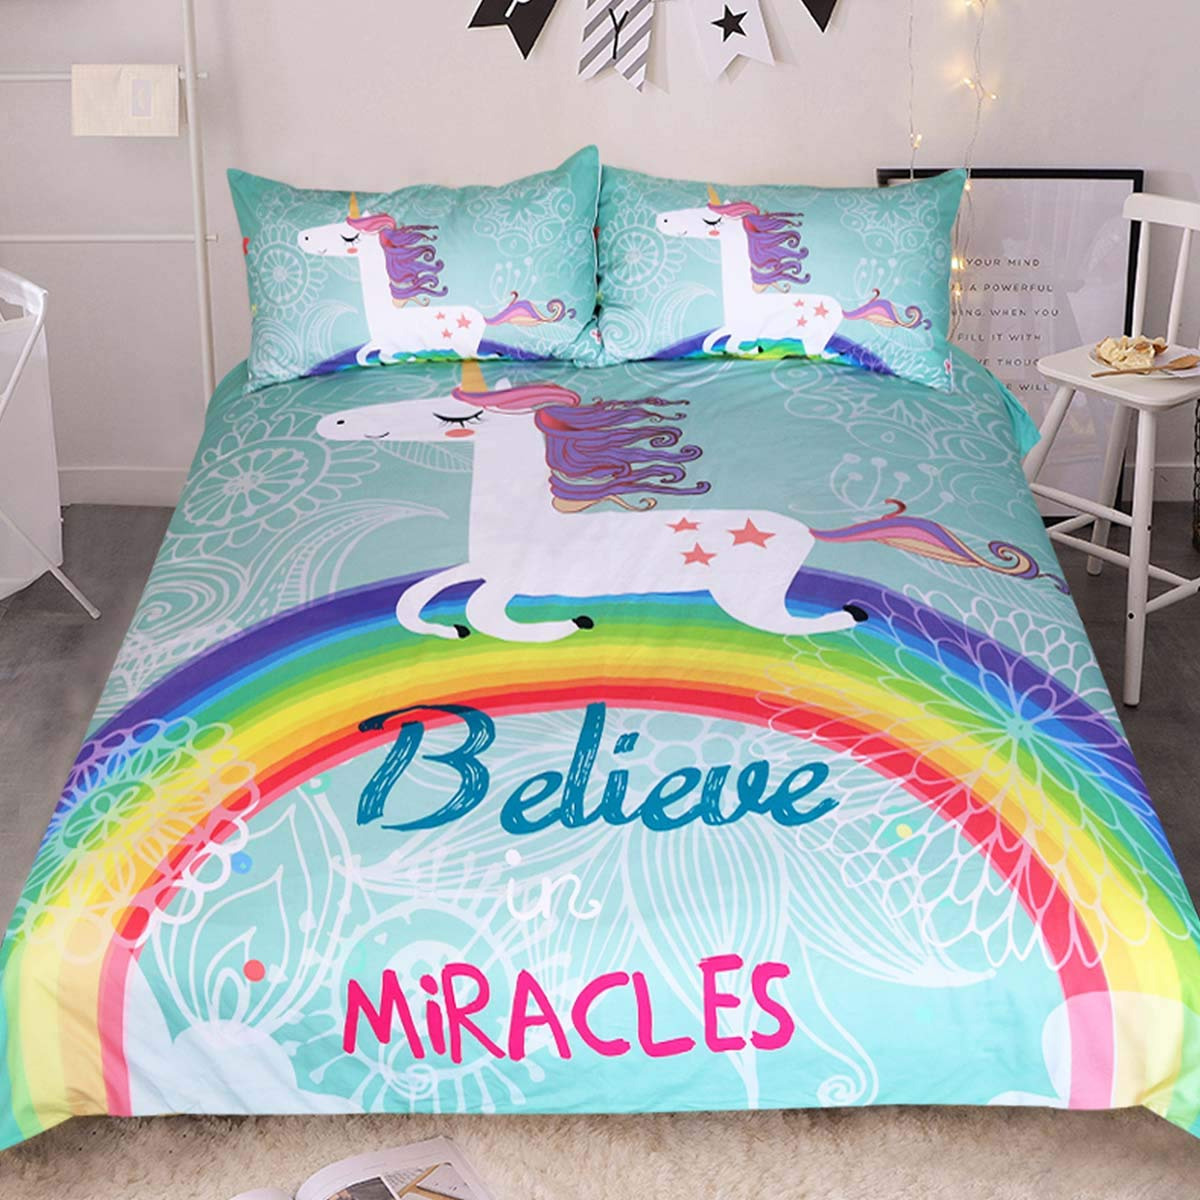 Sleepwish White Unicorn Bedding Rainbow Unicorn Duvet Cover 3 Piece Mint Green Kids Girls Cartoon Bed Set Cute Horse Gifts (Twin)